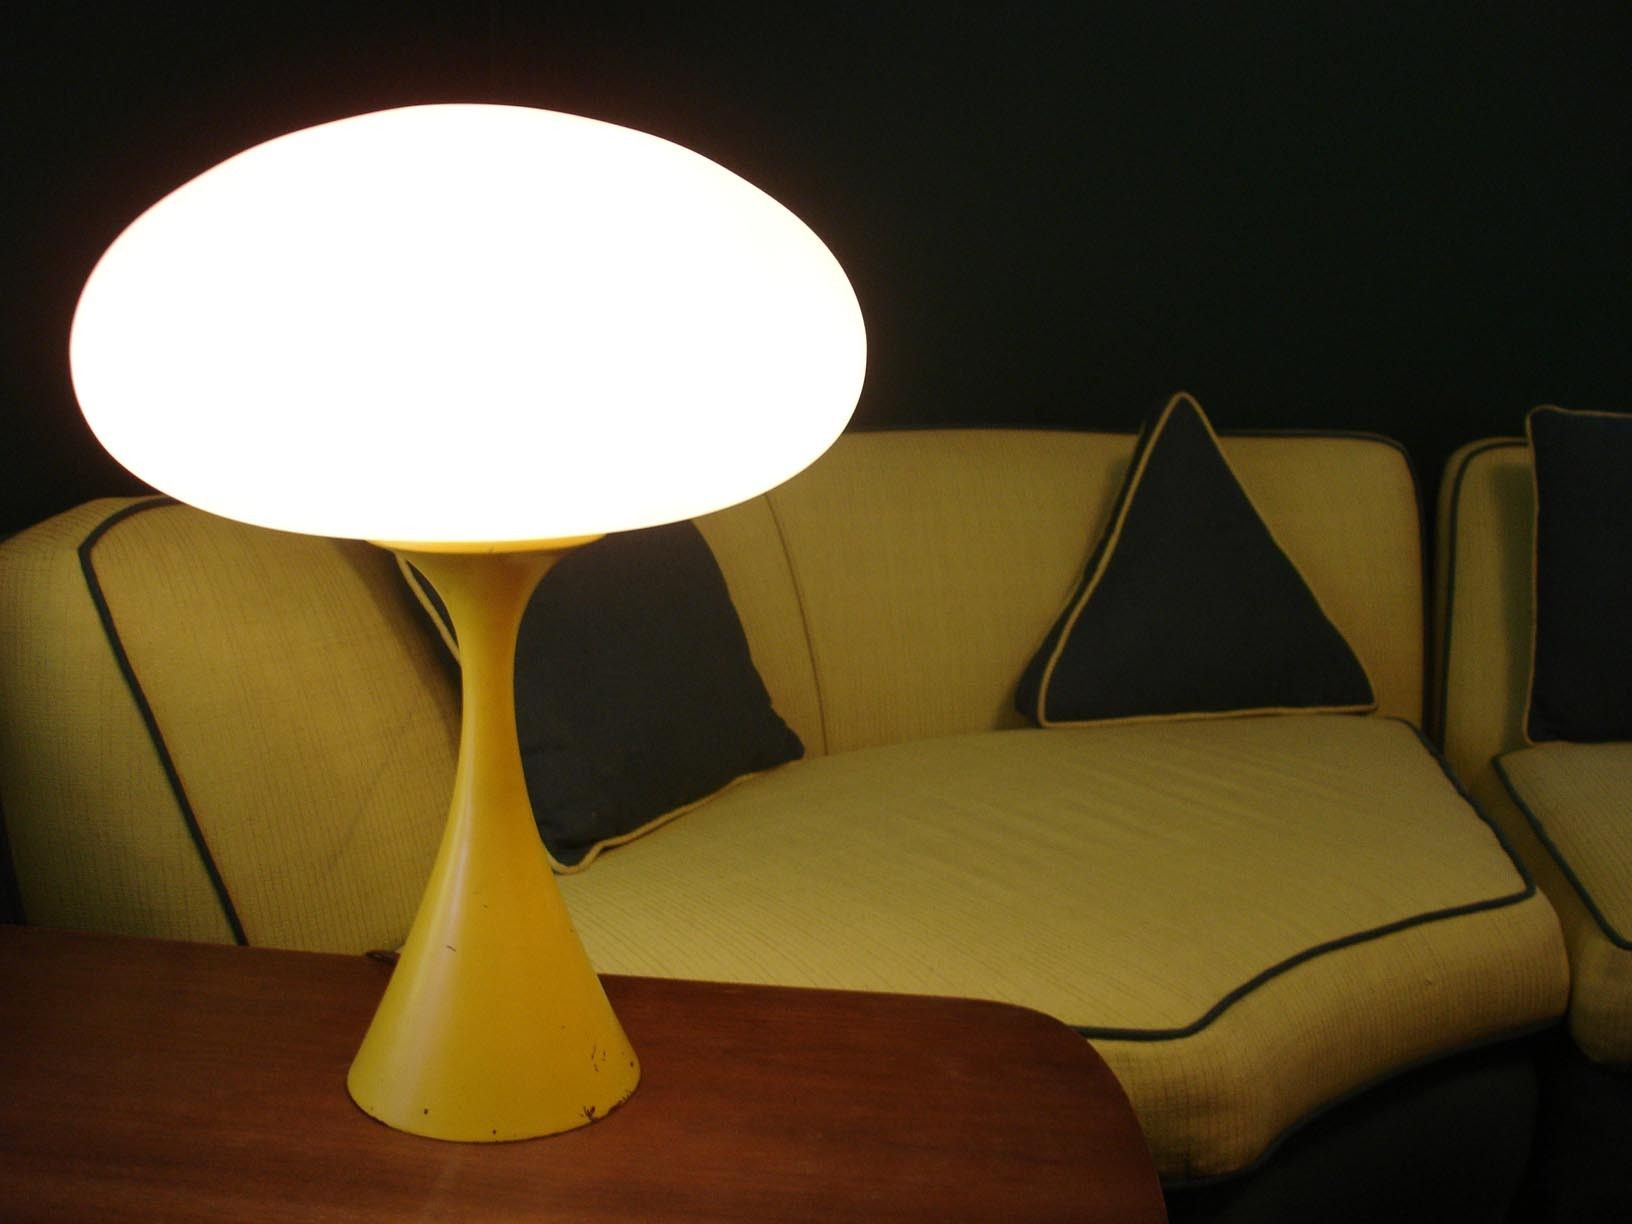 Beautiful A Laurel Mushroom Lamp. With Its Space Age Design And Sleek Curves, Itu0027s  Truly